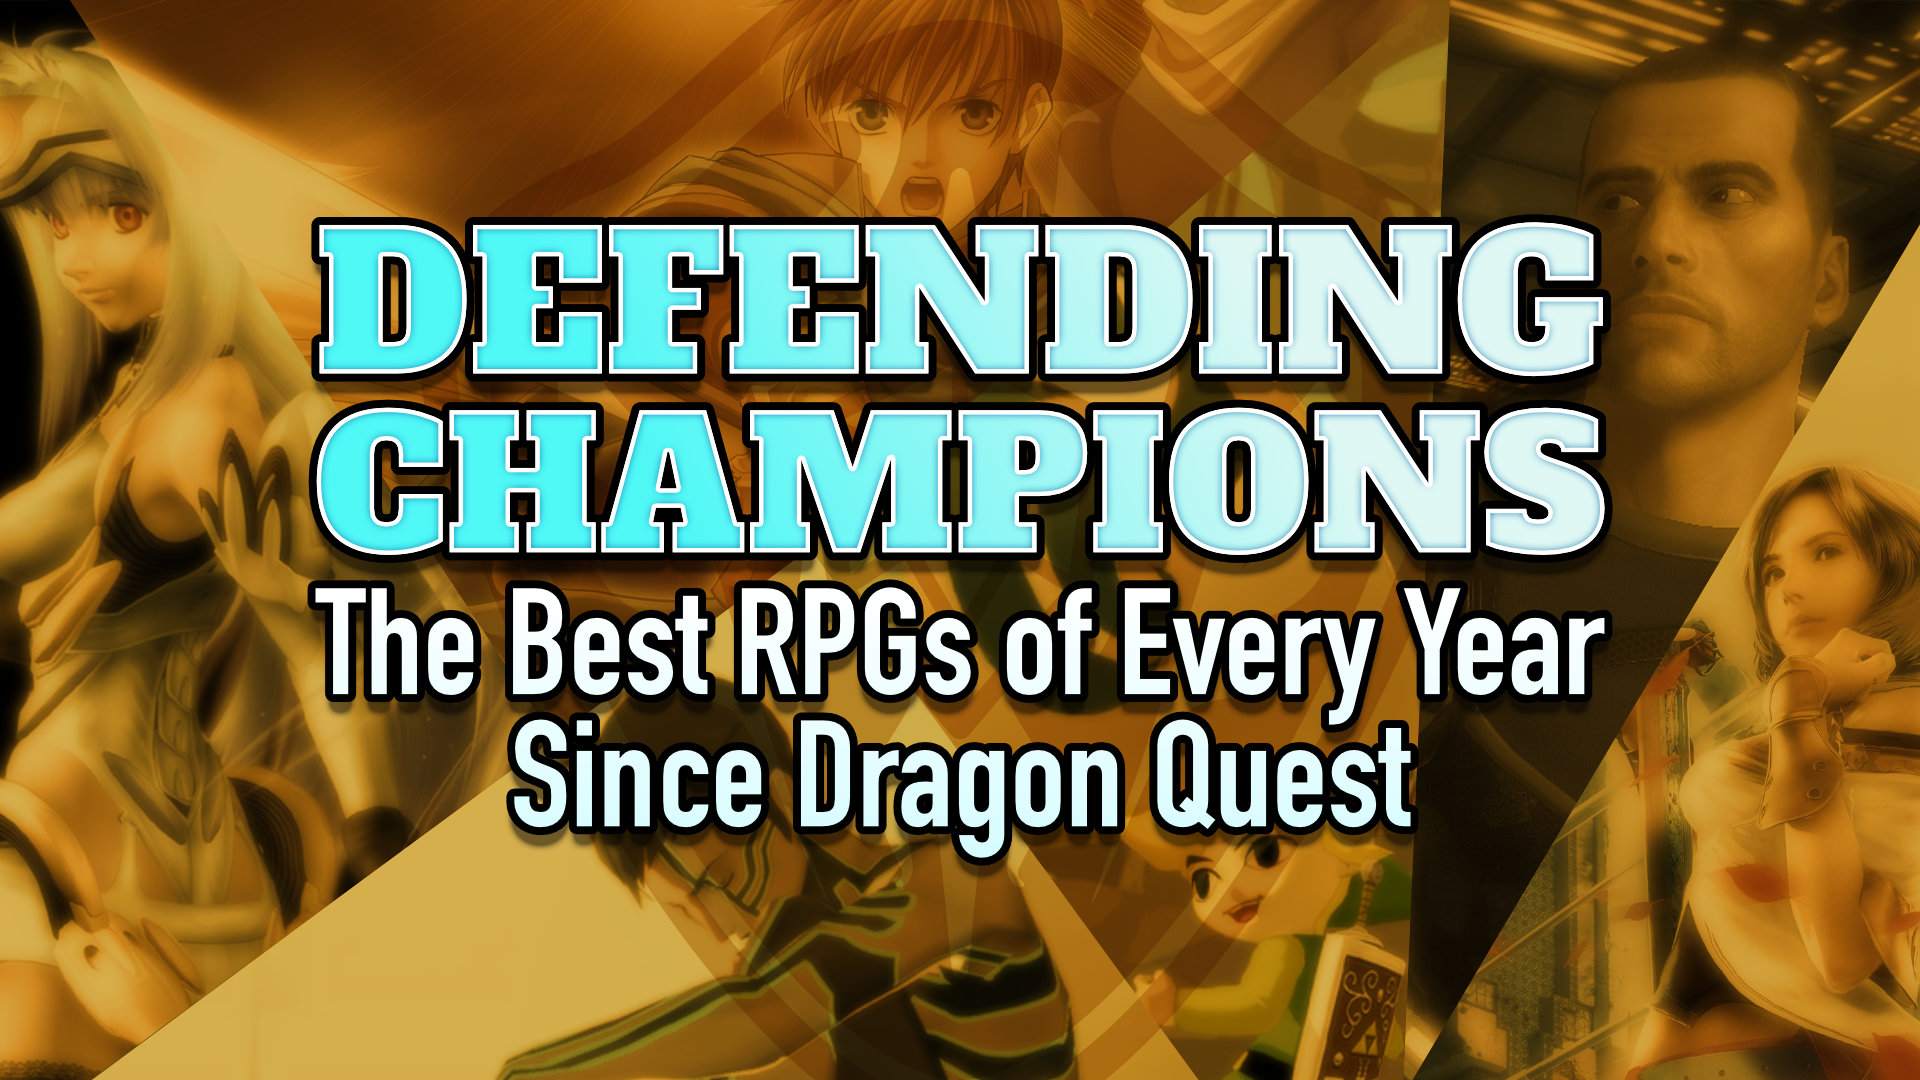 Defending Champions: The Best RPGs of Every Year Since Dragon Quest 2000s